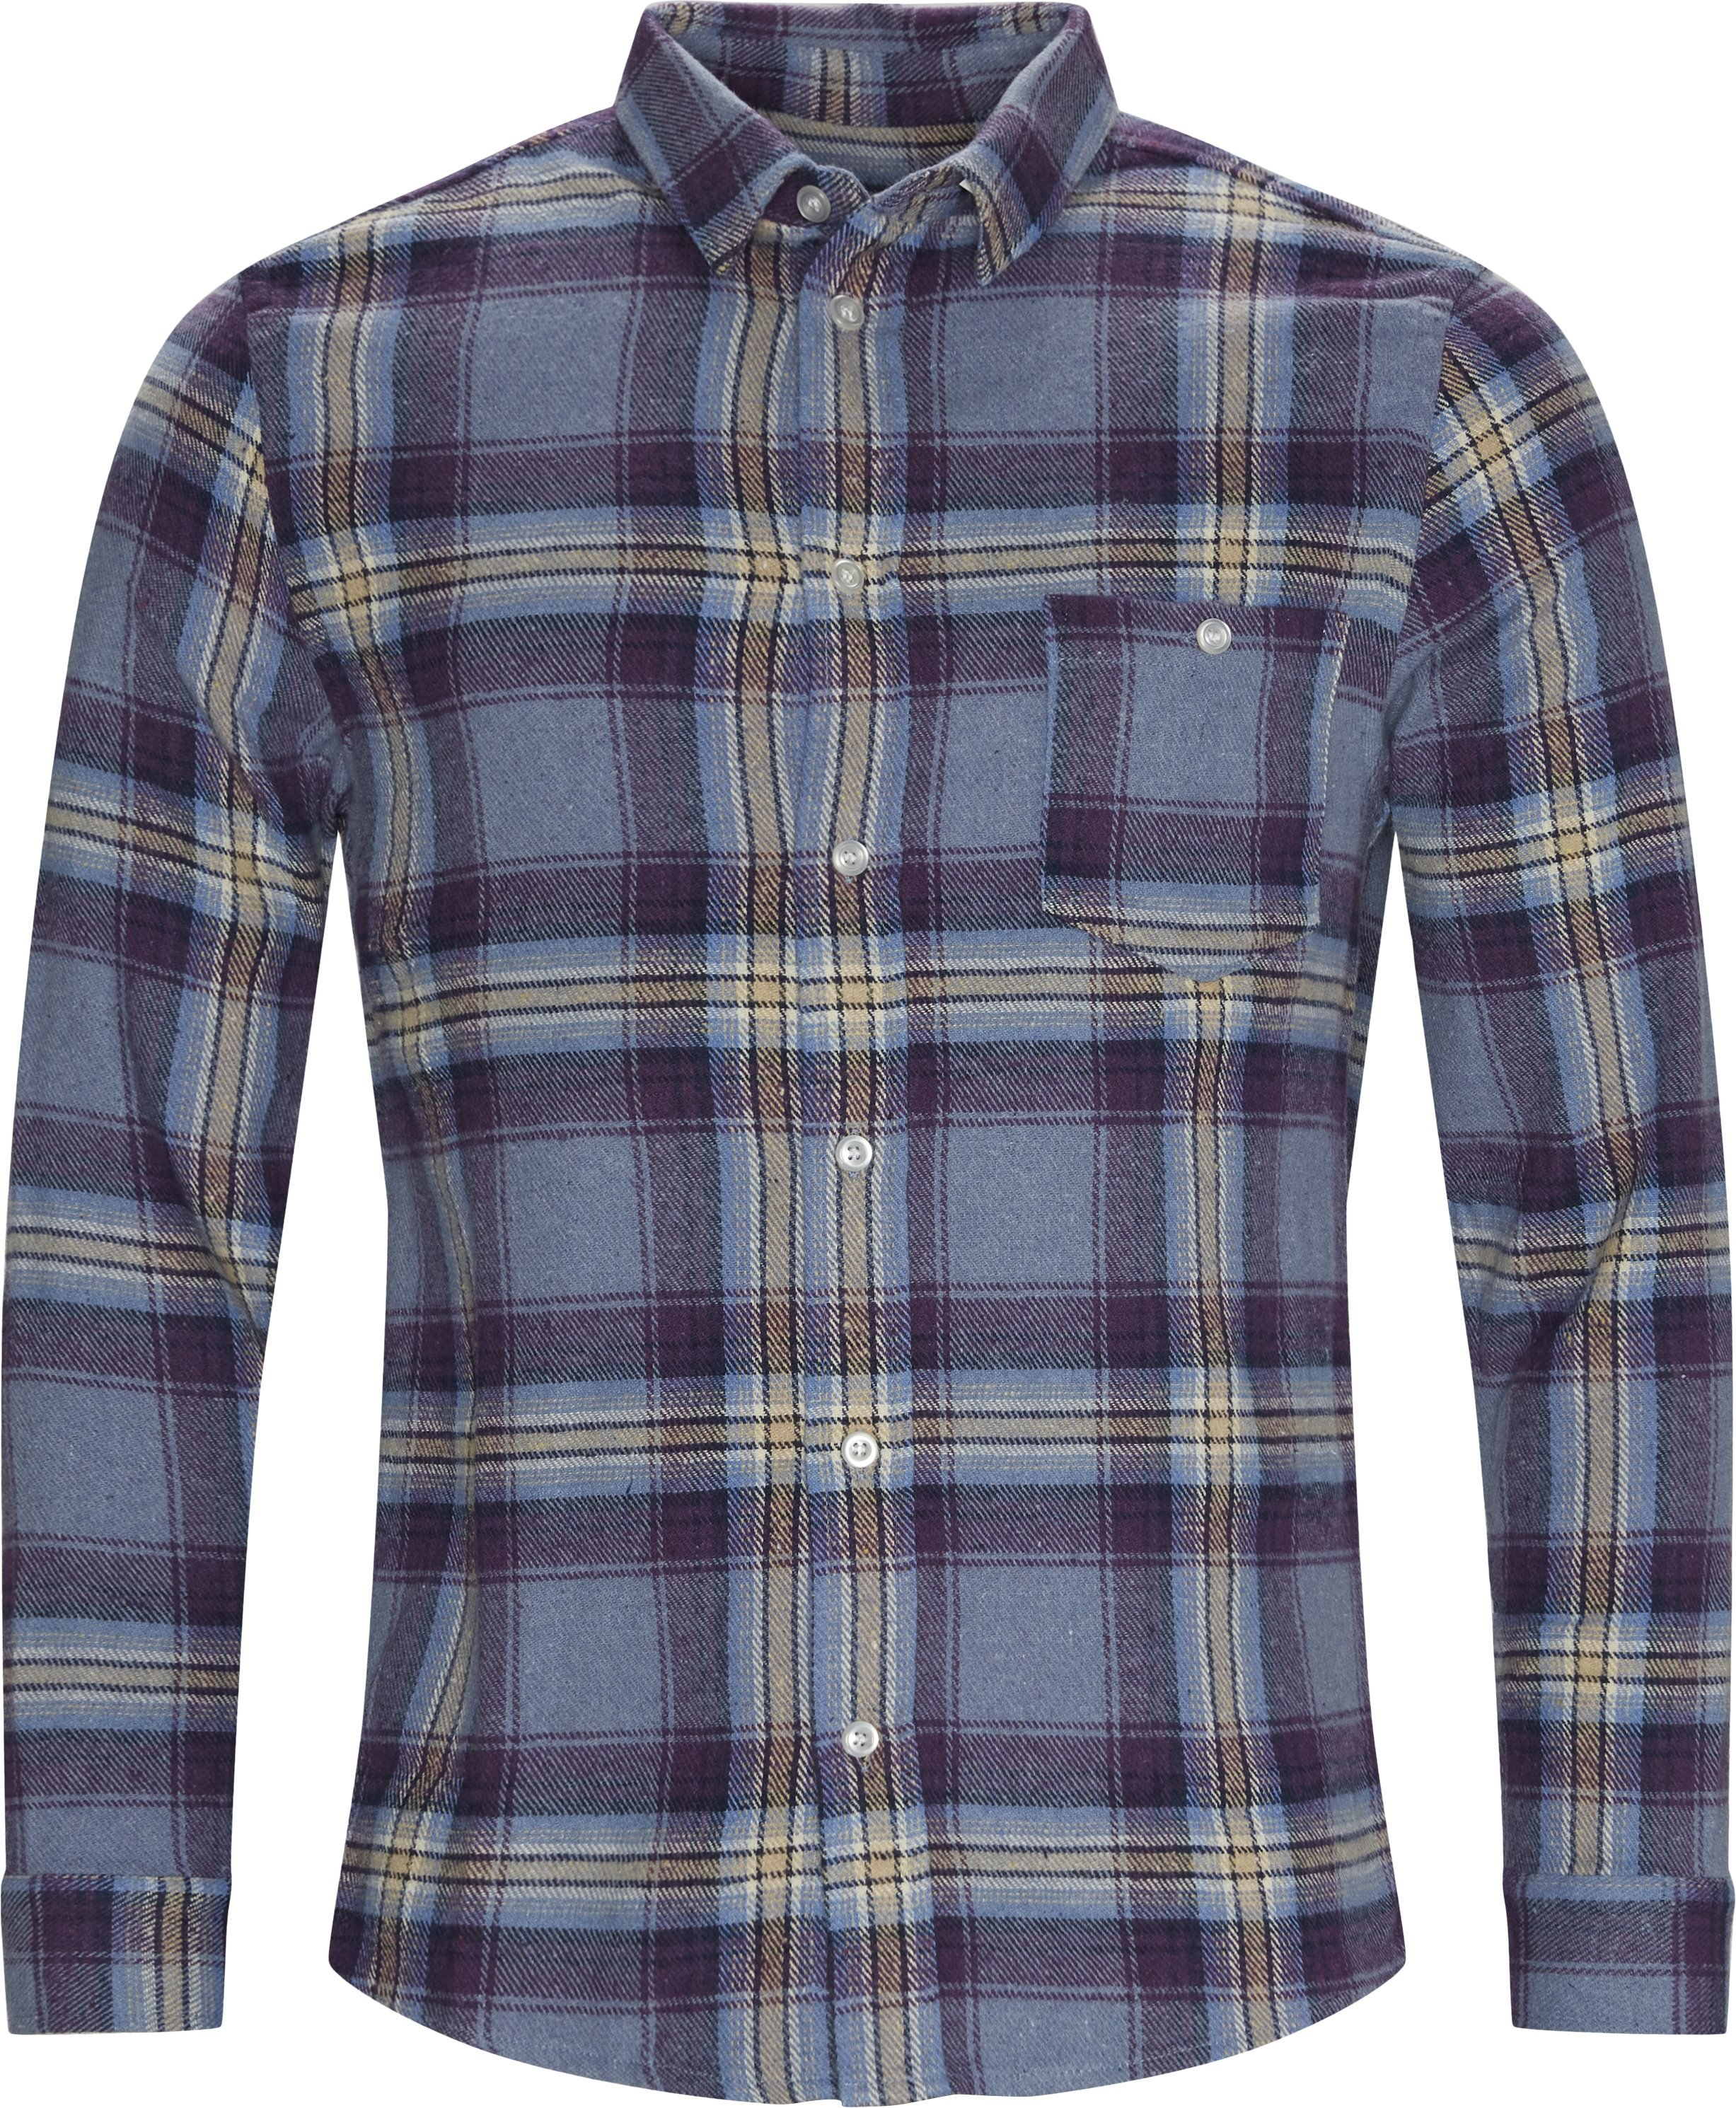 Odessa Check Shirt - Huvtröjor - Regular - Lila